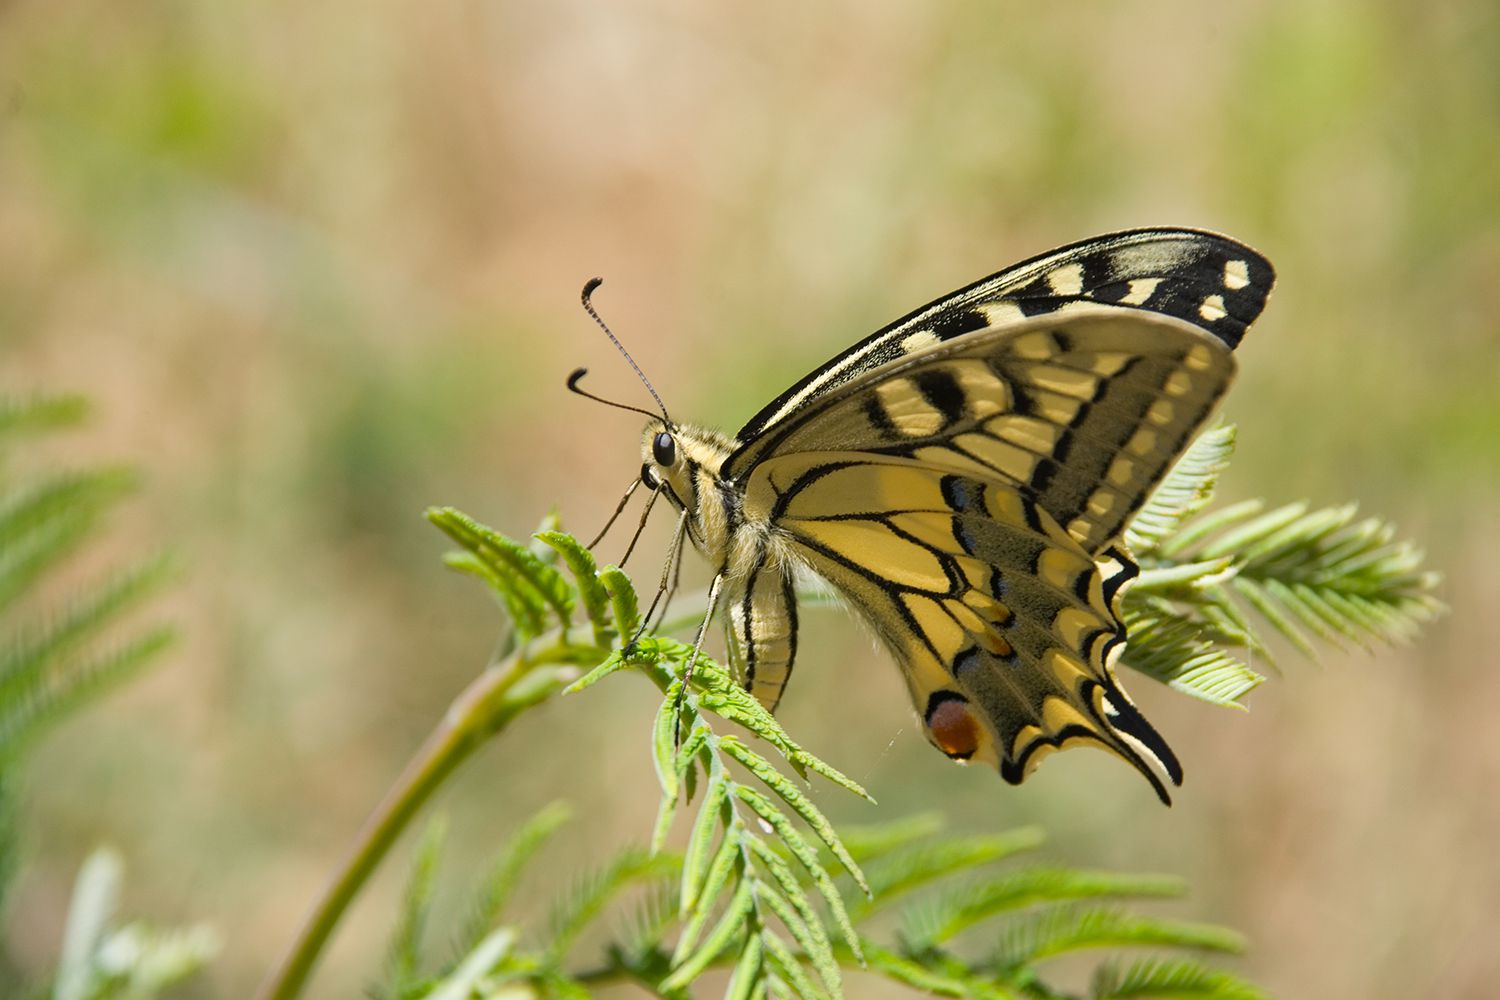 Close up of a Machaonas (Papilio Machaon) Swallowtail Butterfly on a plant